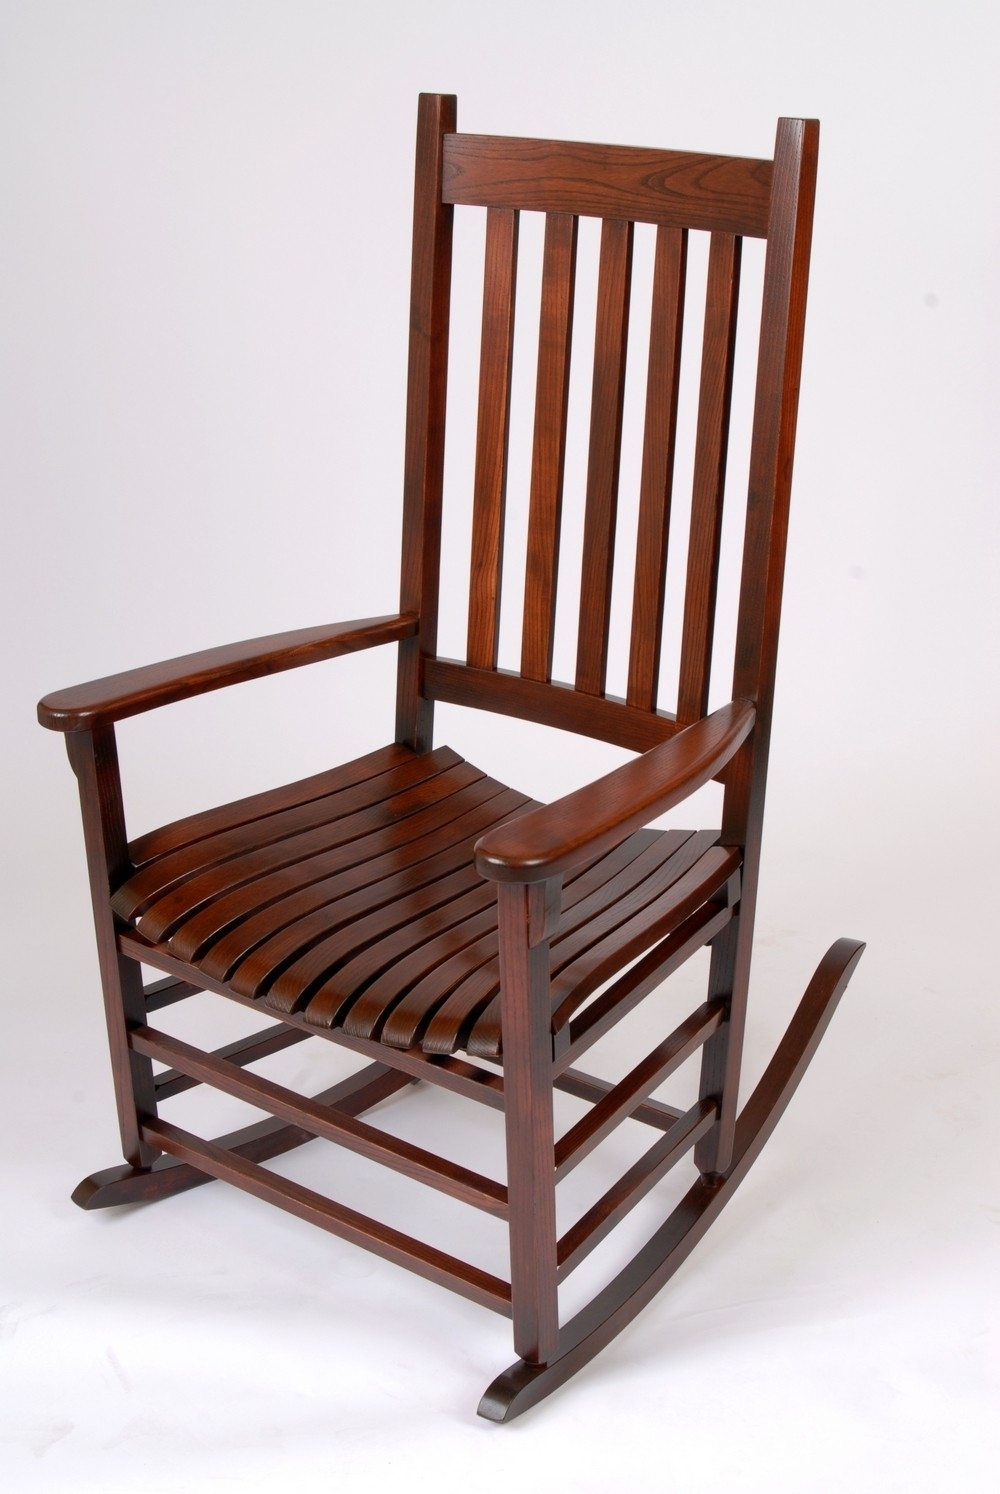 Sensational Inspiration Ideas Old Style Wooden Rocking Chair 68 With Old Fashioned Rocking Chairs (#11 of 15)